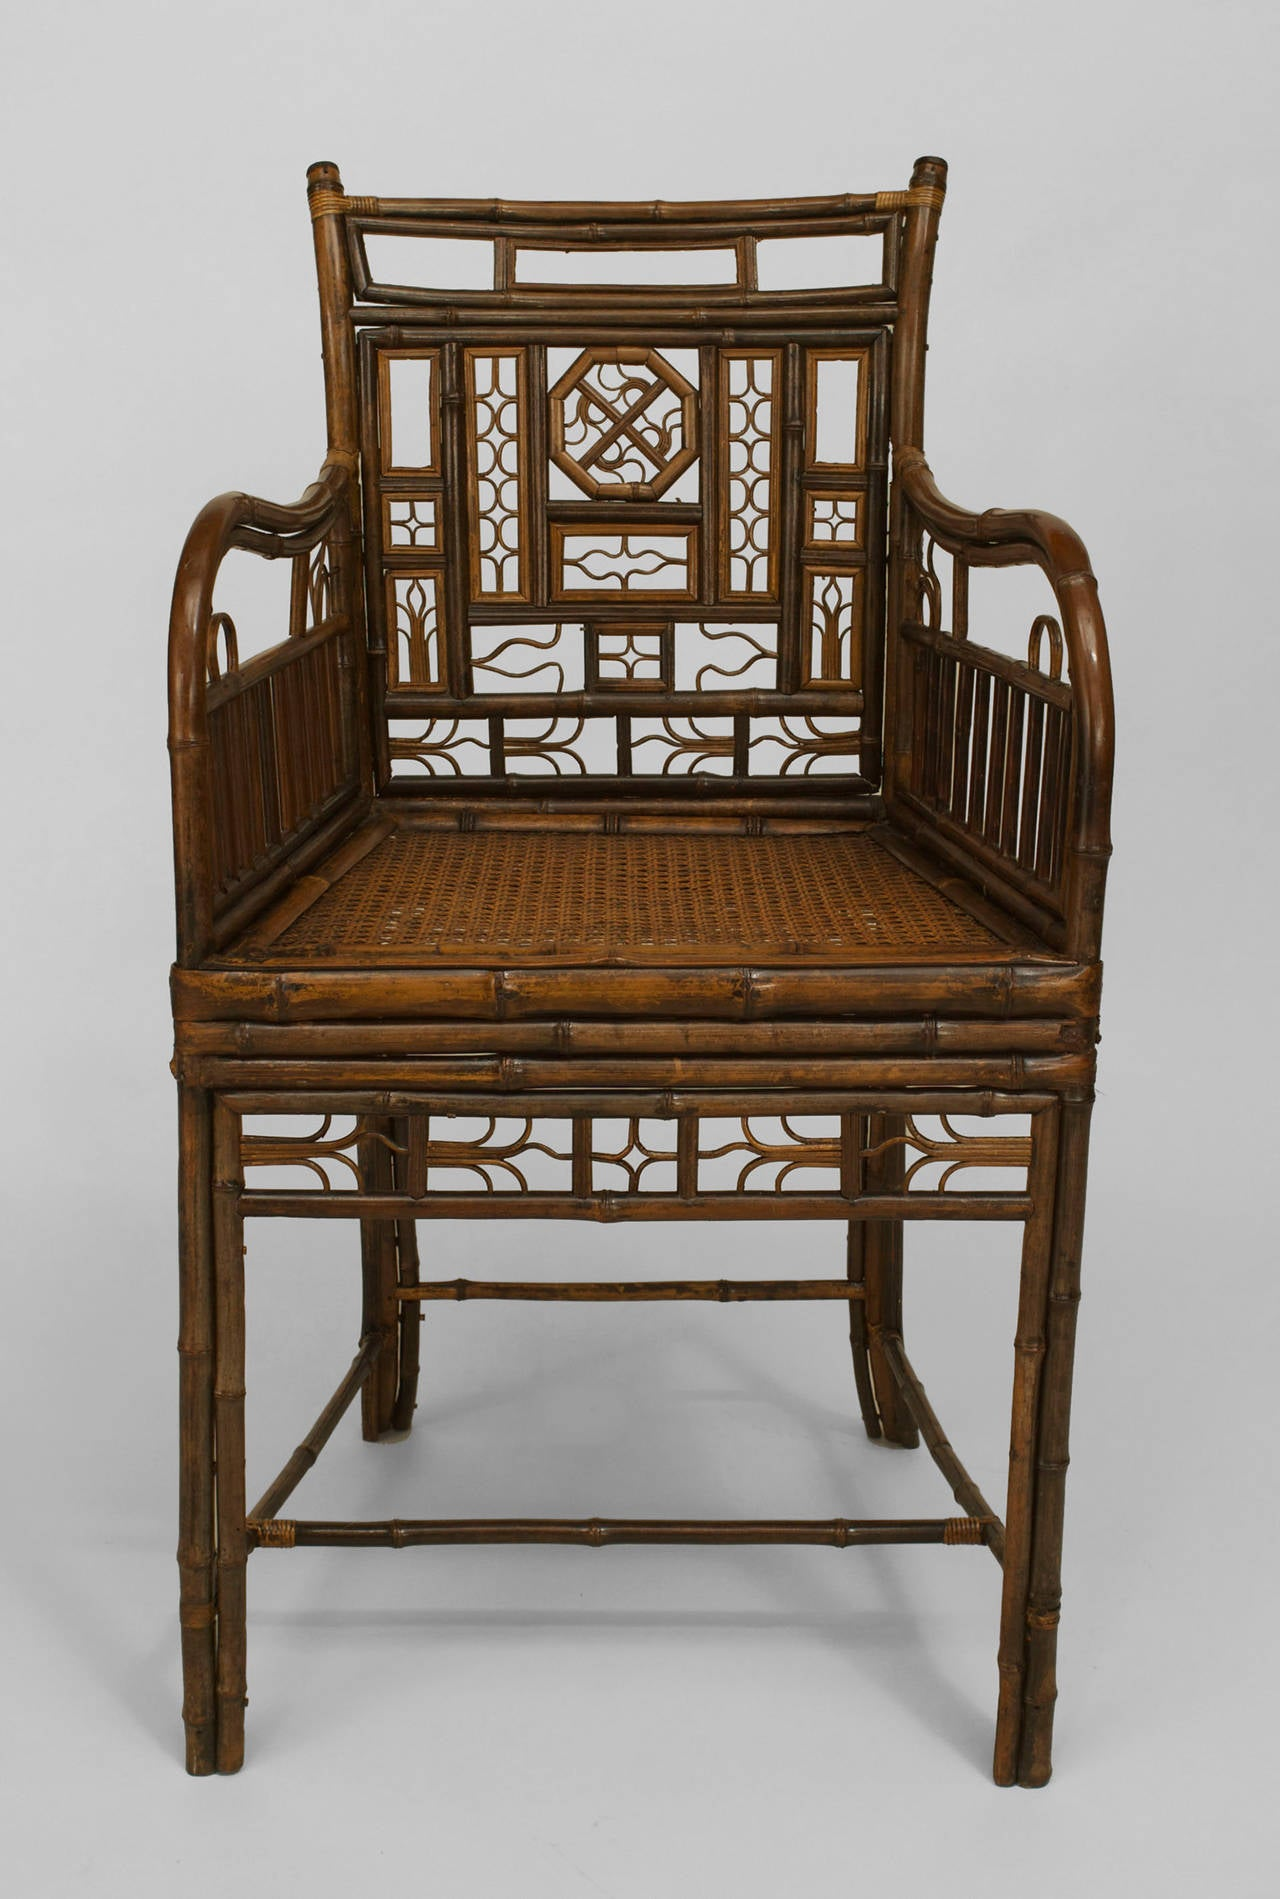 19th c English Regency Brighton Design Bamboo Armchair For Sale